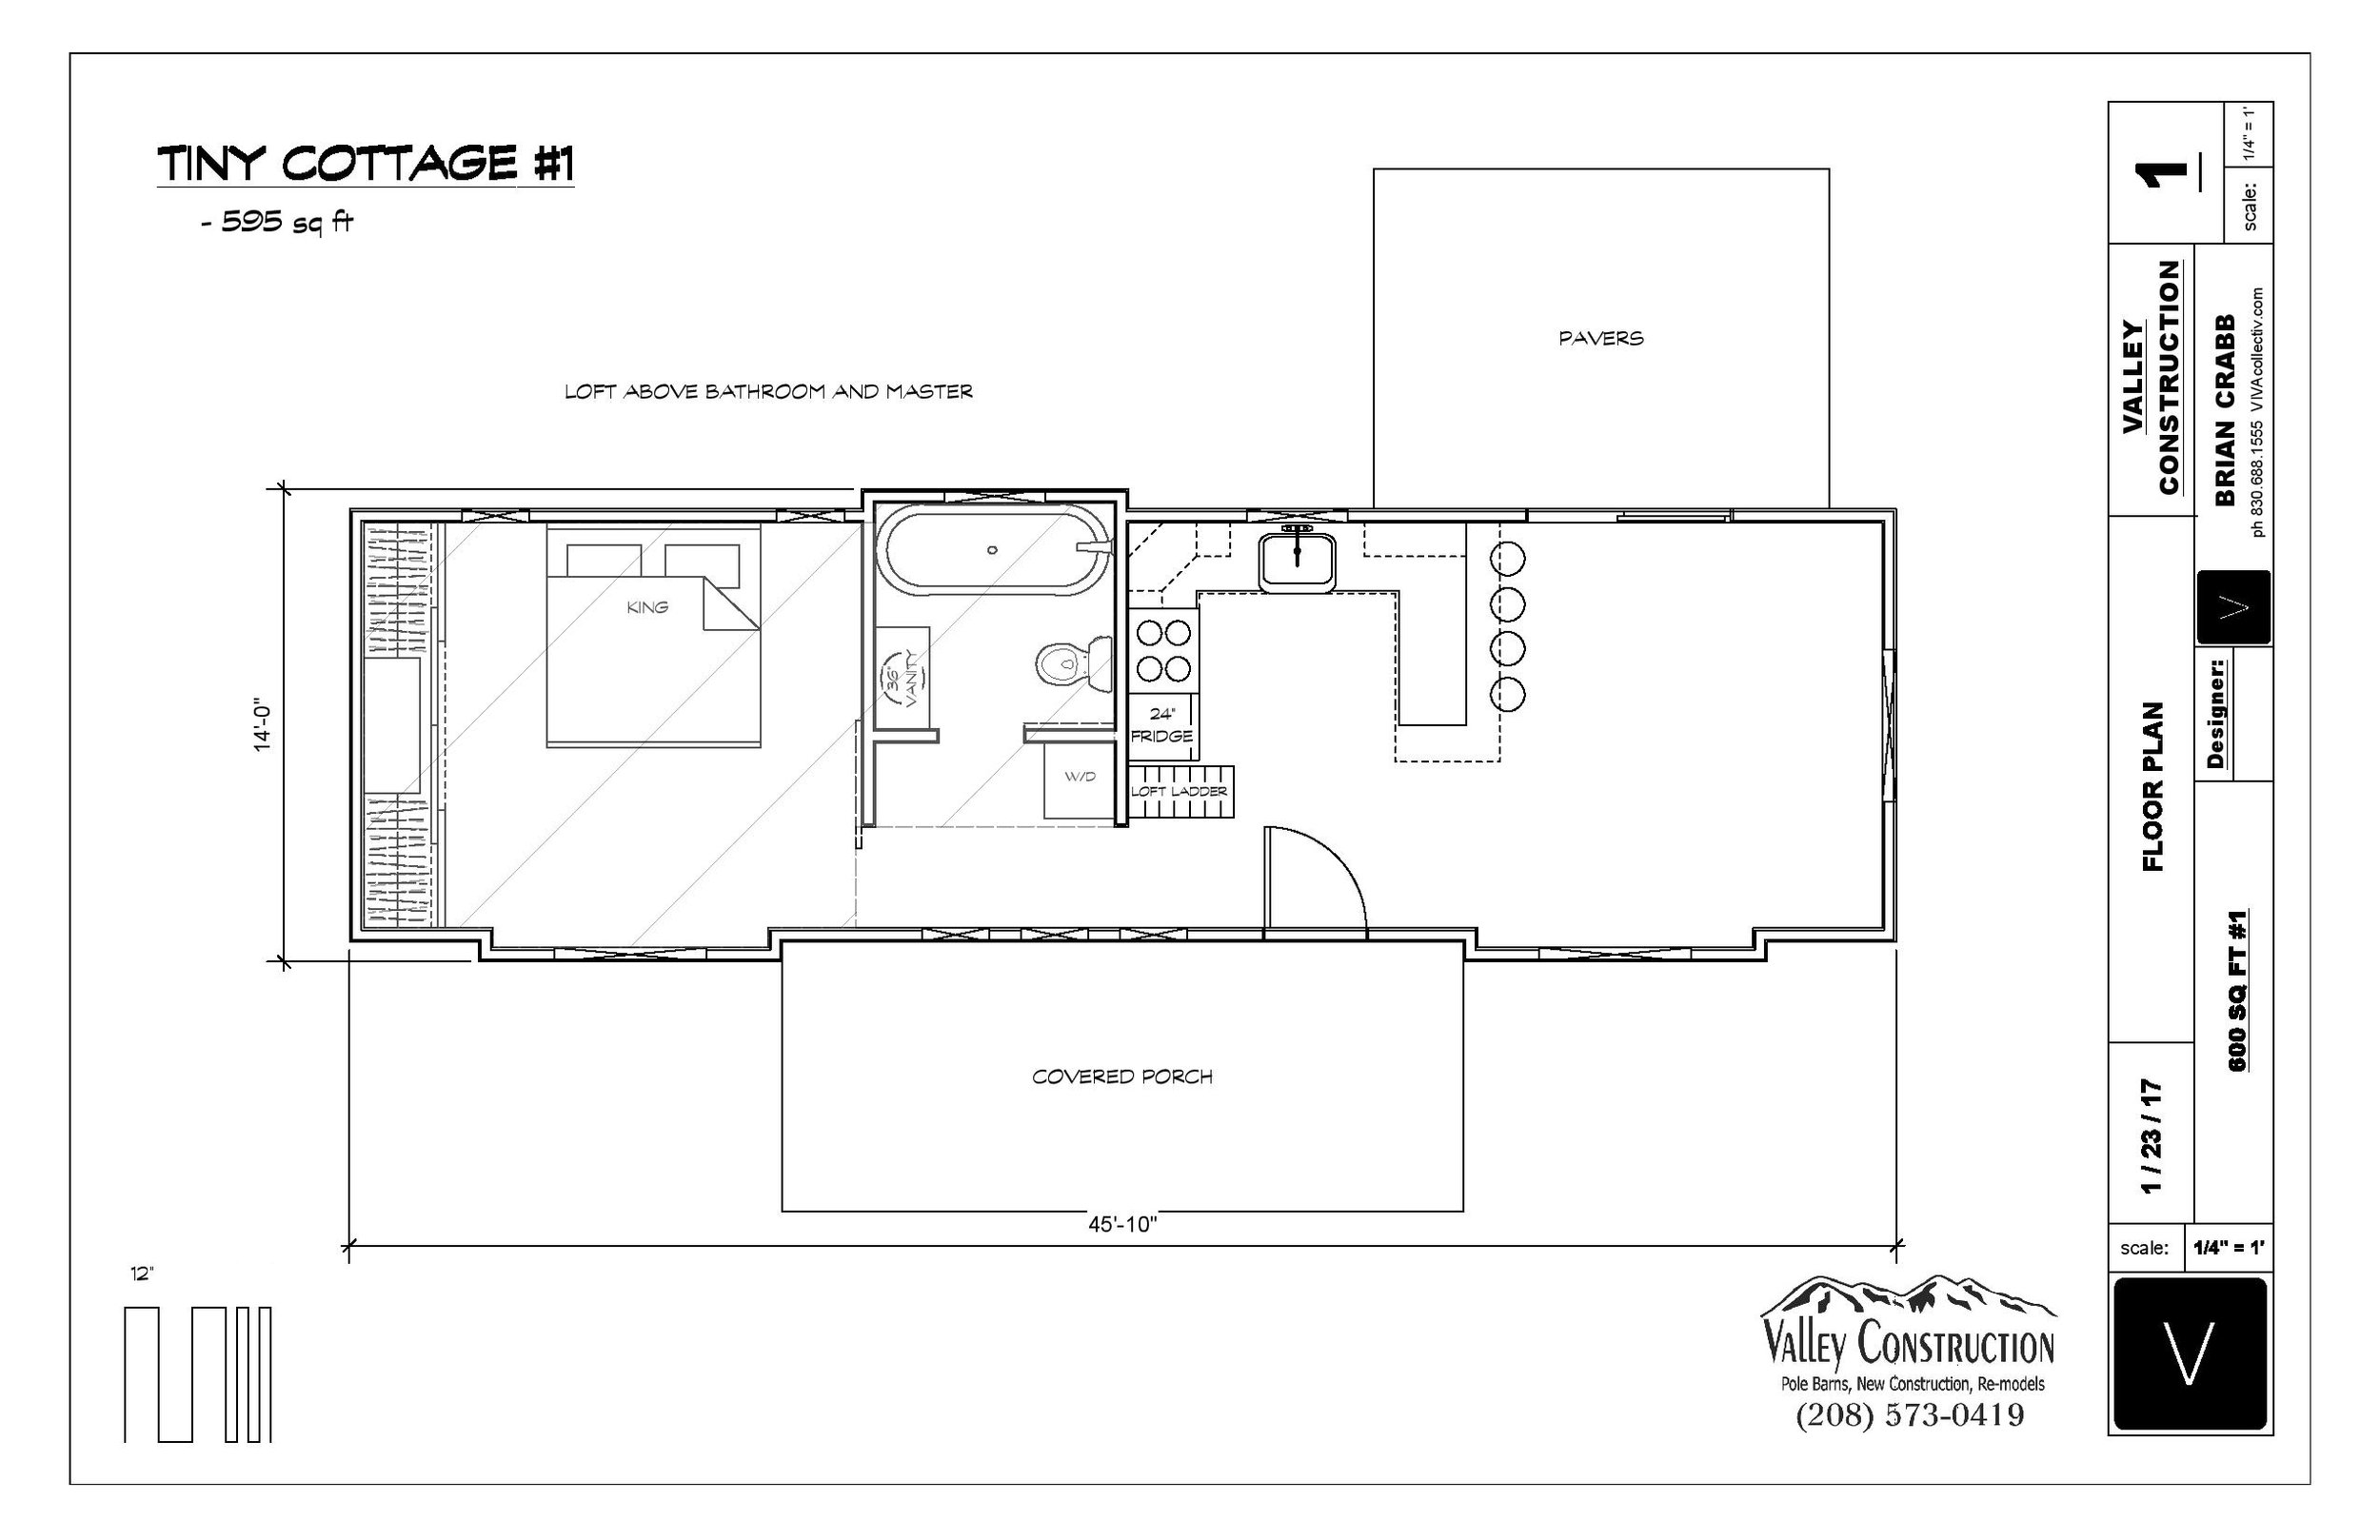 600 SQ FT #1 PACKET-page-002.jpg